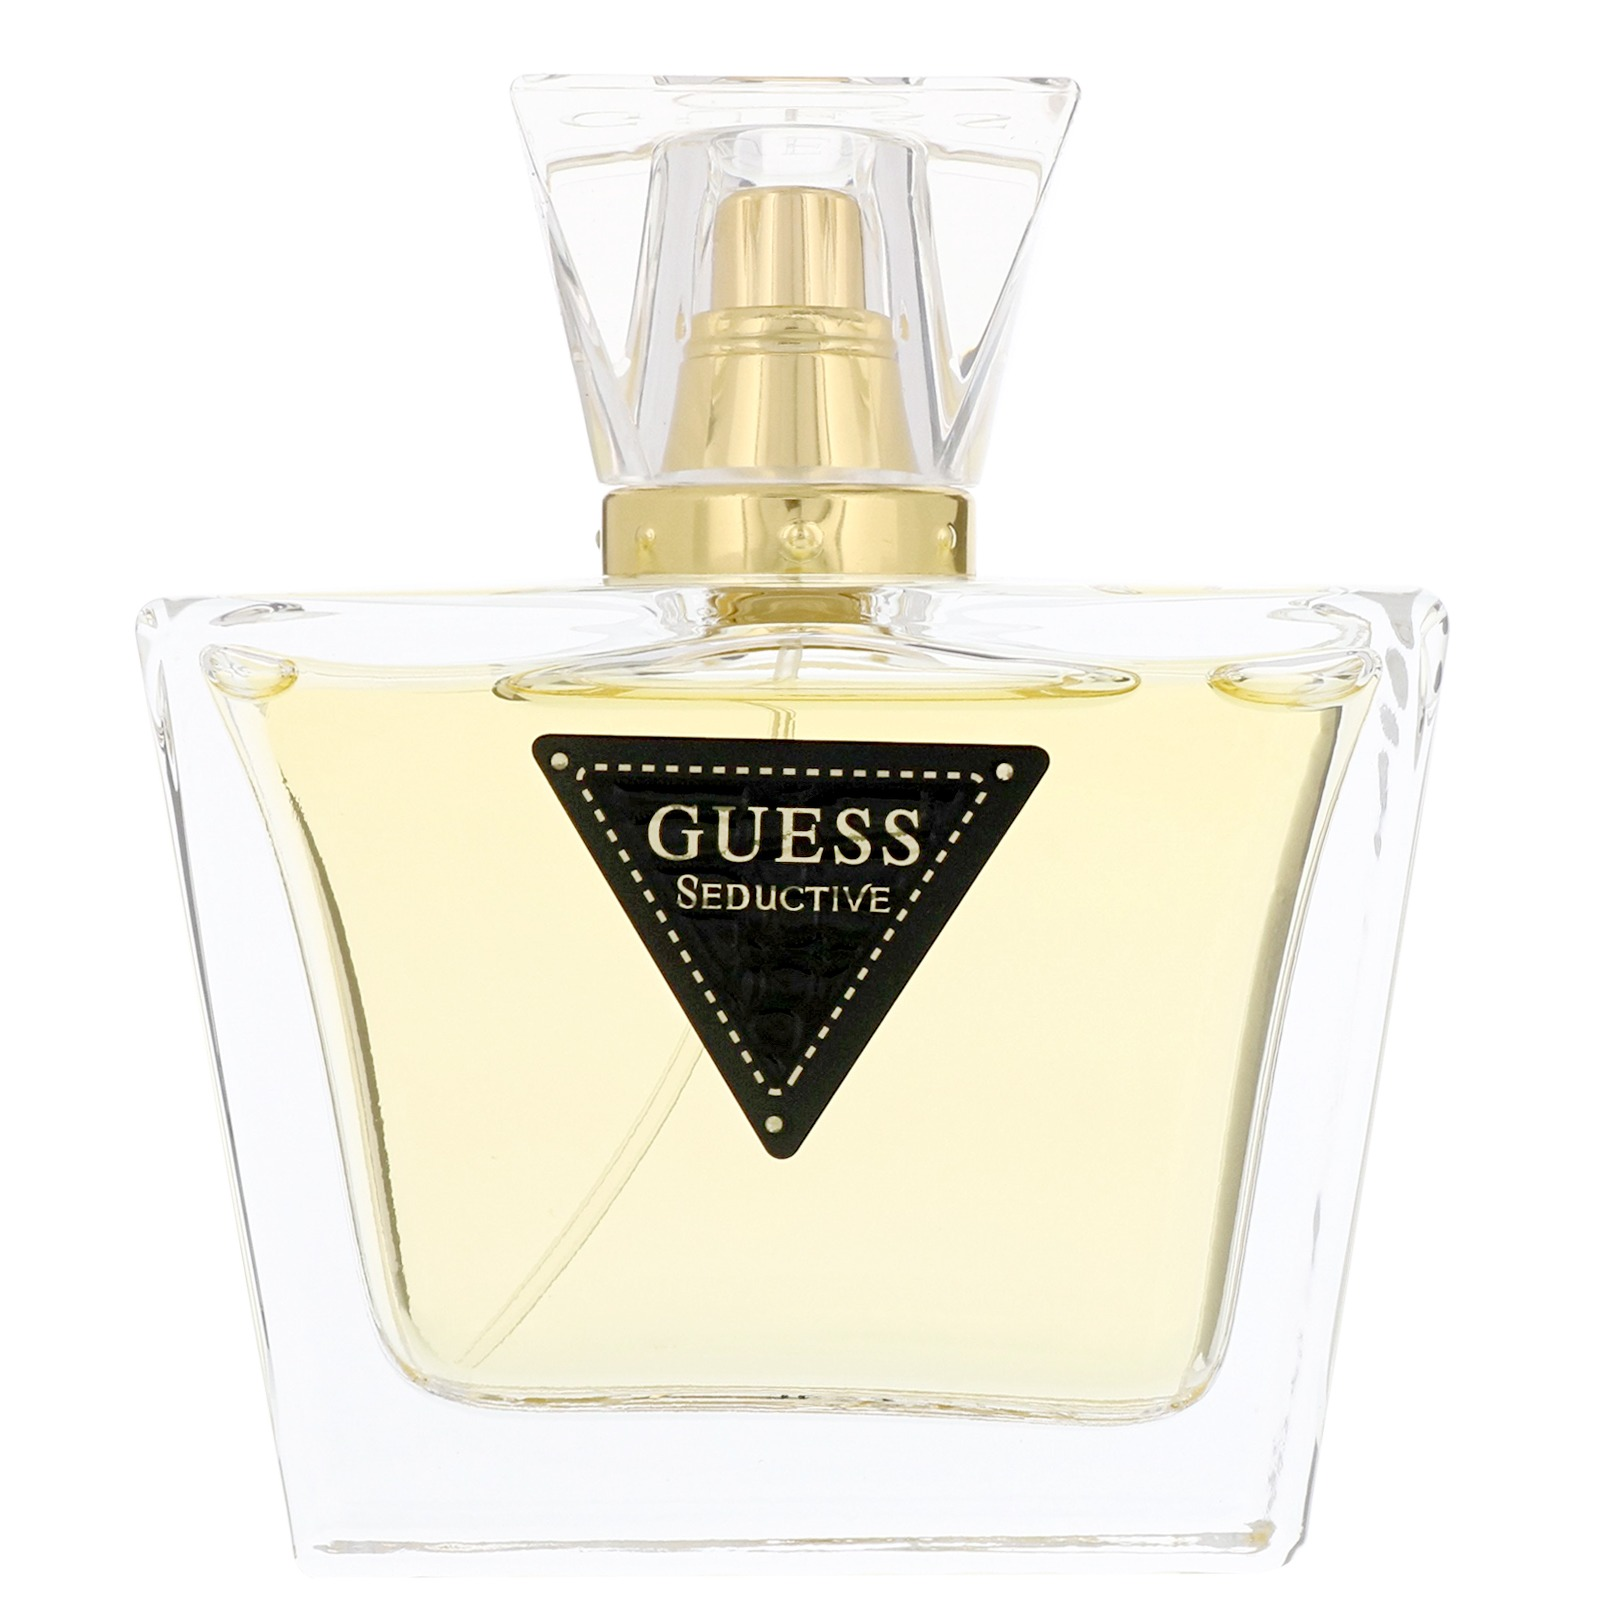 7f5a210a20b7 Guess Seductive Eau de Toilette Spray 75ml - Perfume